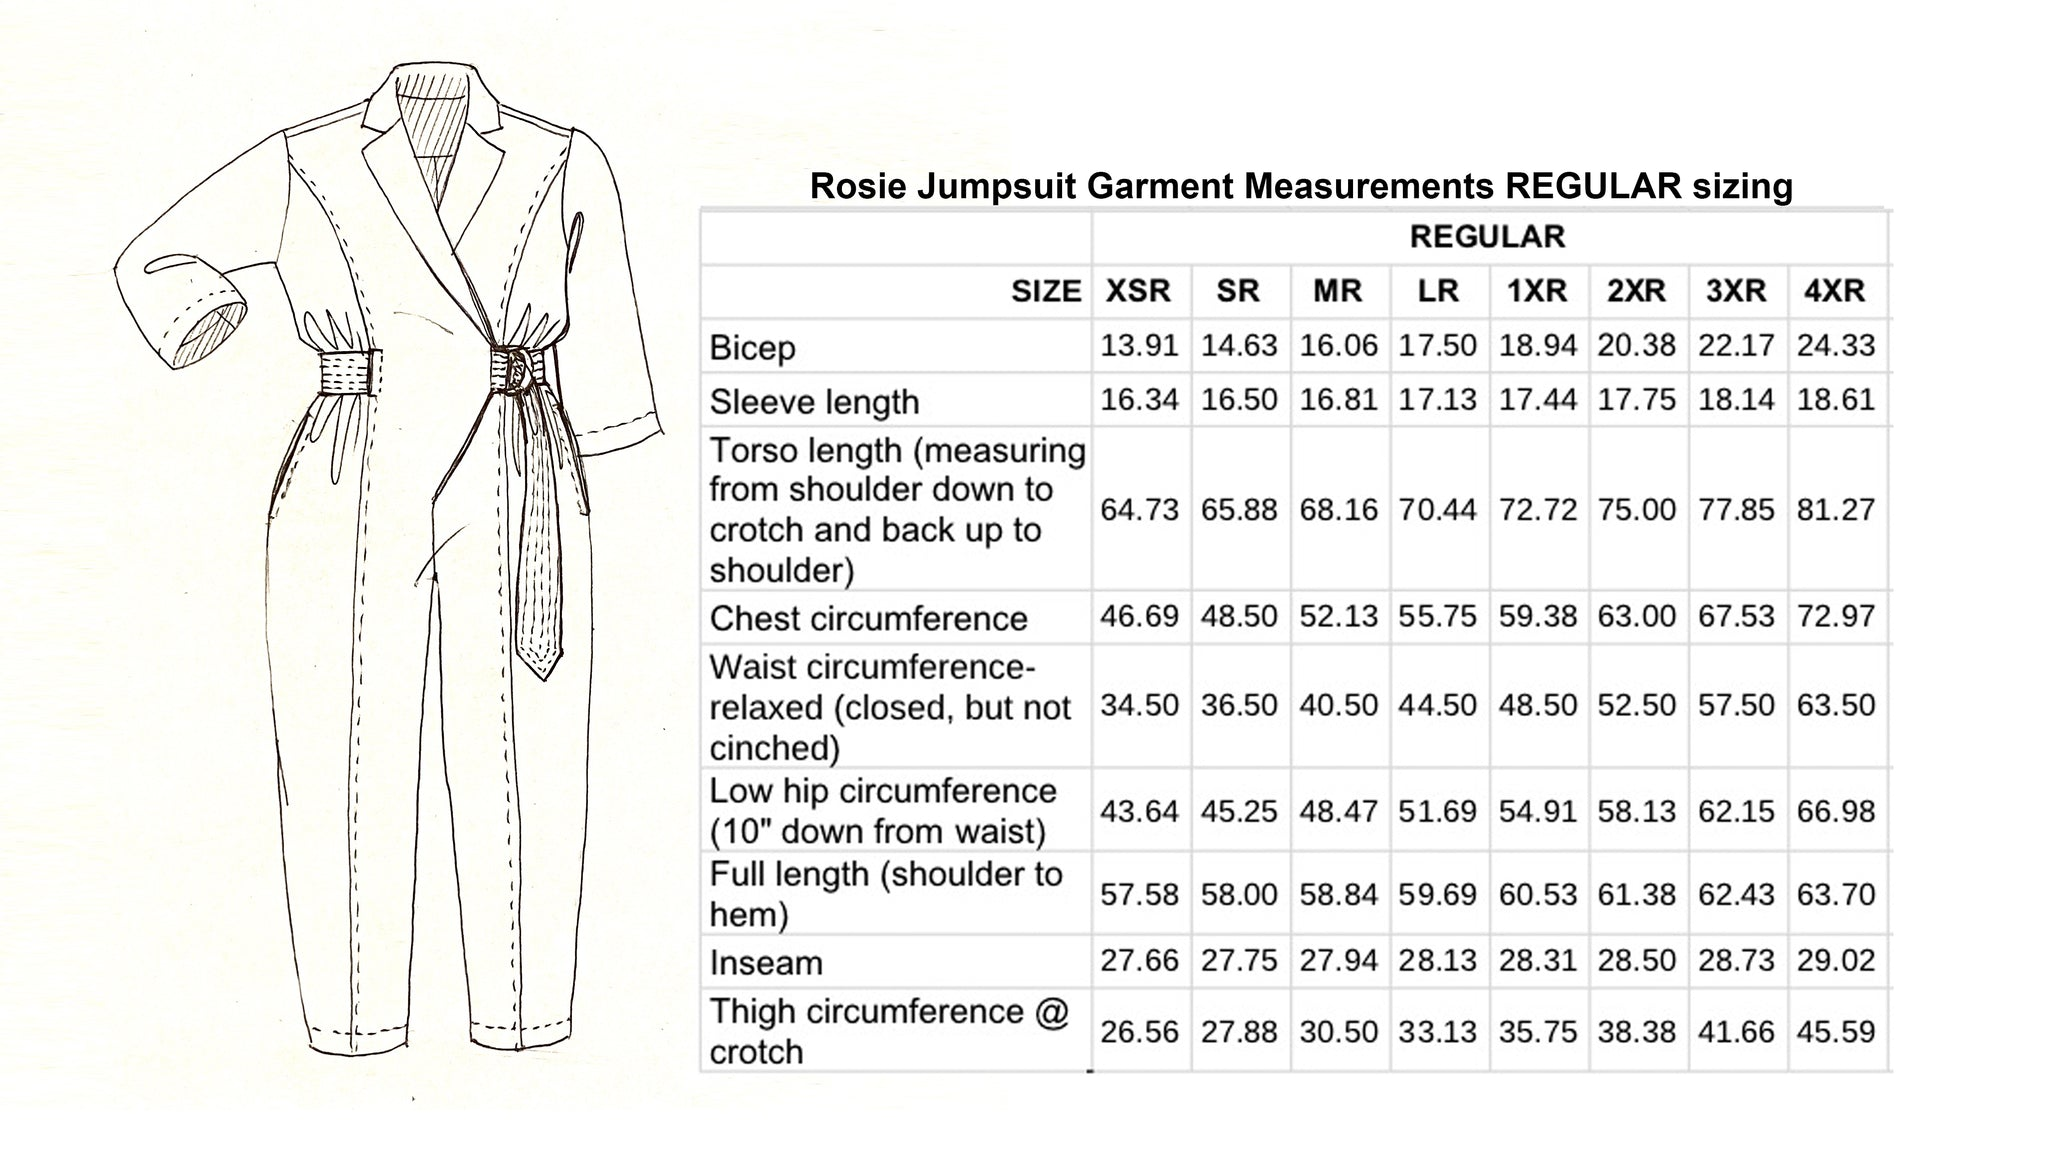 Garment measurements Rosie Jumpsuit regular